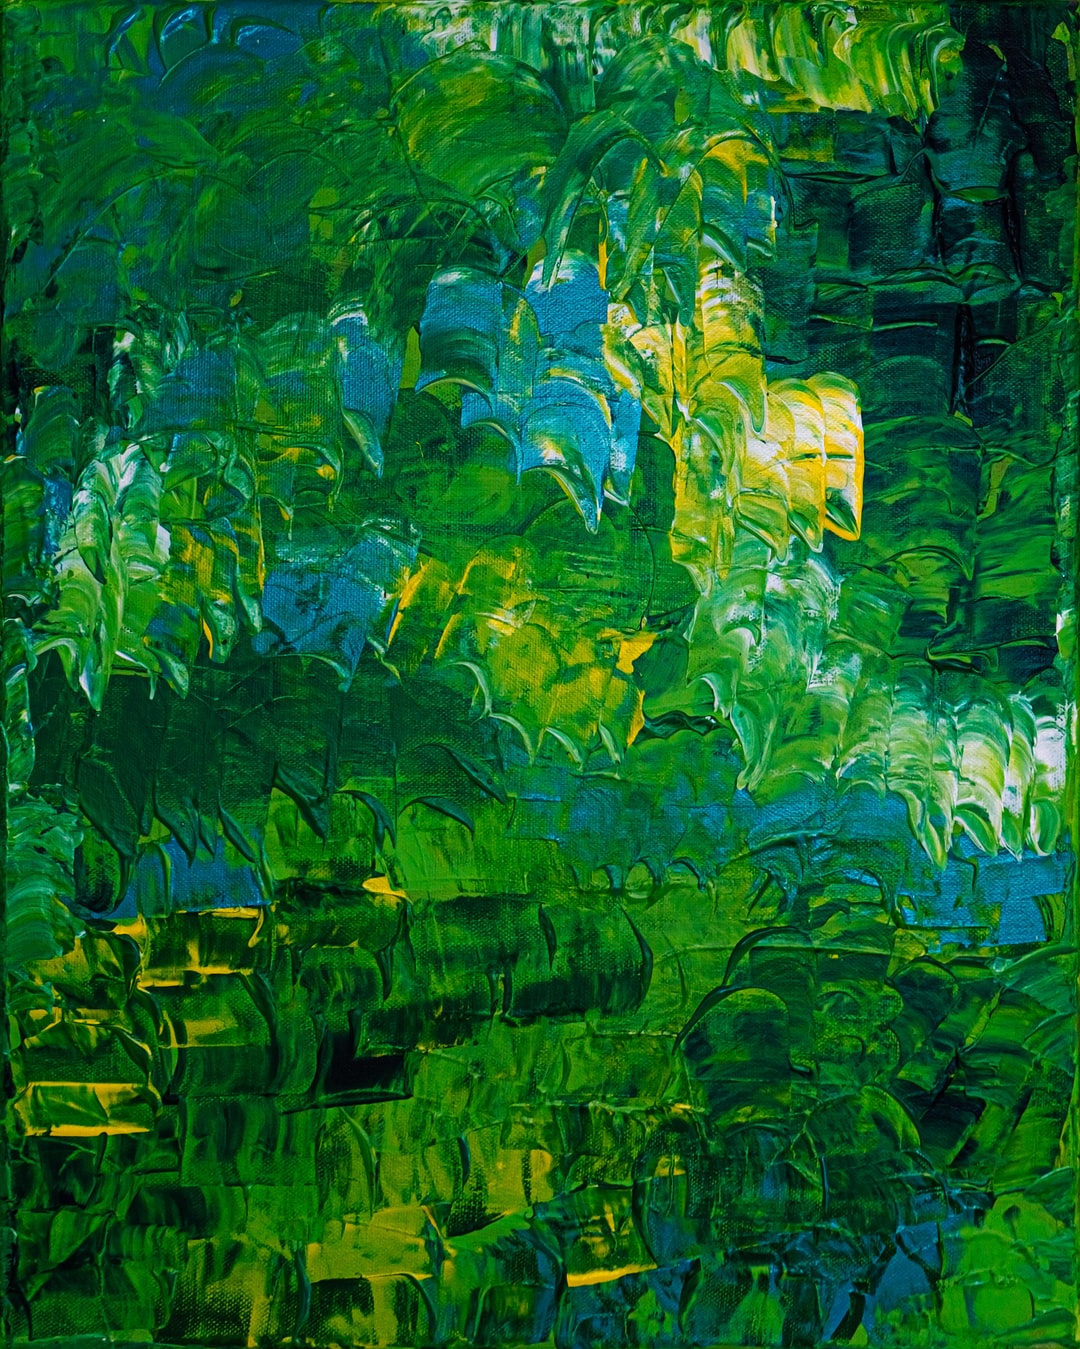 Raphael Renter • Grüne Mutter (Green Mom)  //Ohne Titel, Acryl auf Leinwand, 40 x 49,5 (cm), Mara Meilinger, 2008 (Photograph) - https://raphaelrenter.de/greensun